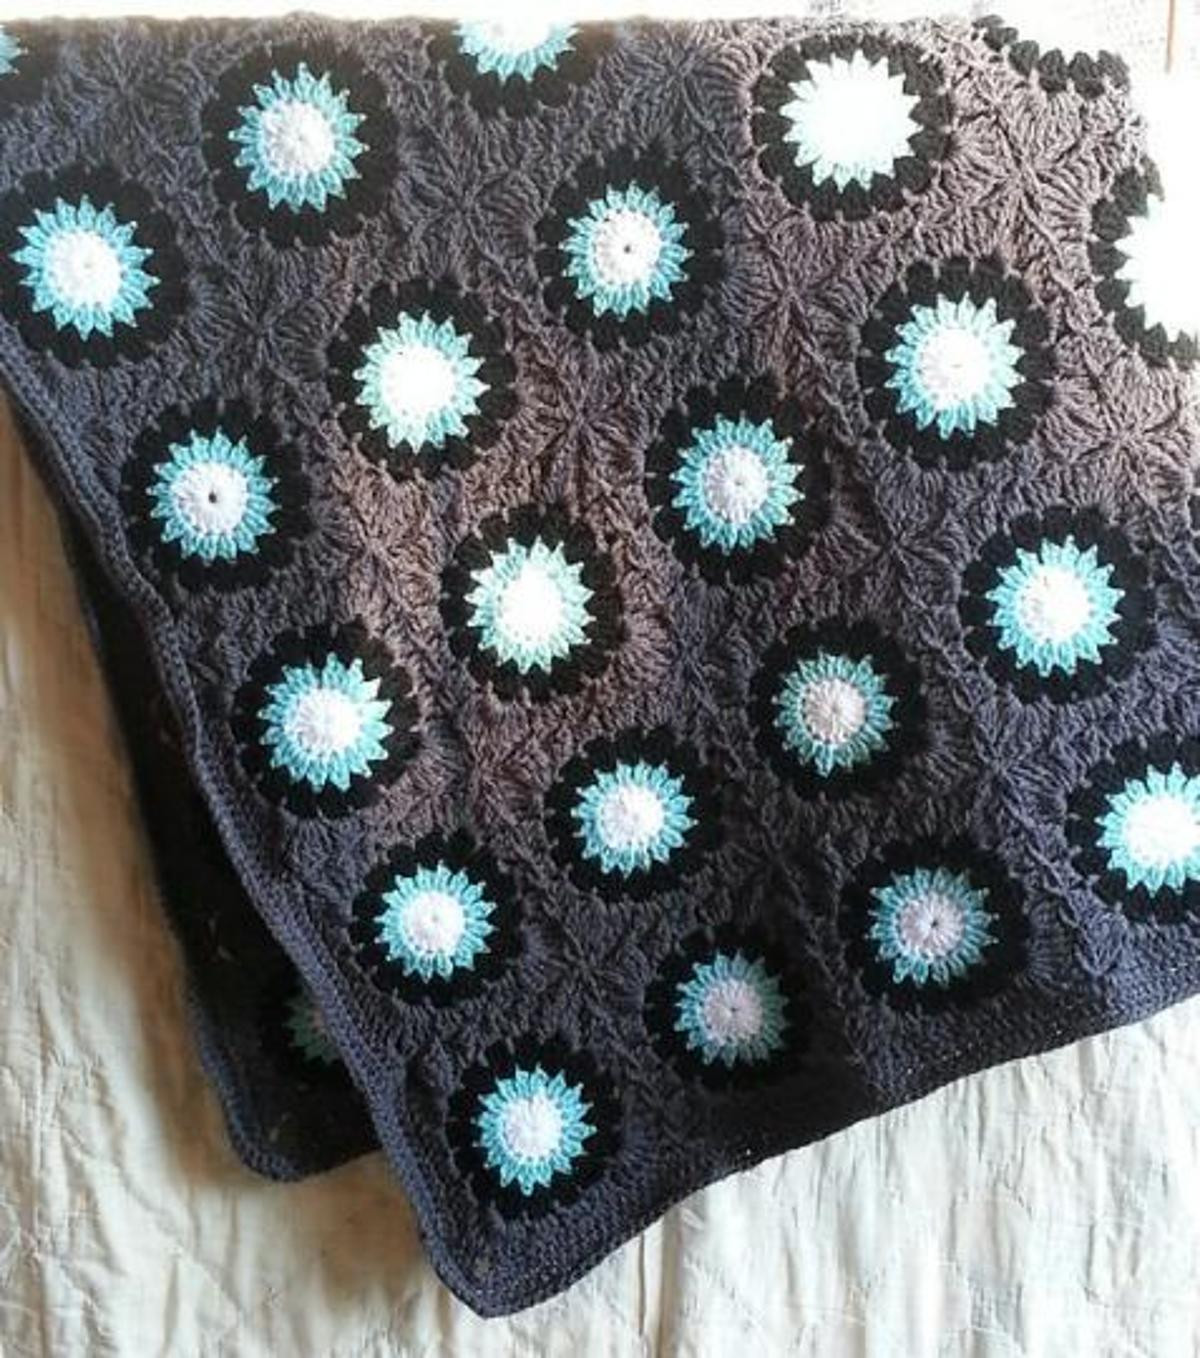 Flower Granny Square Inspirational 10 Flower Granny Square Crochet Patterns to Stitch Of Wonderful 45 Pictures Flower Granny Square